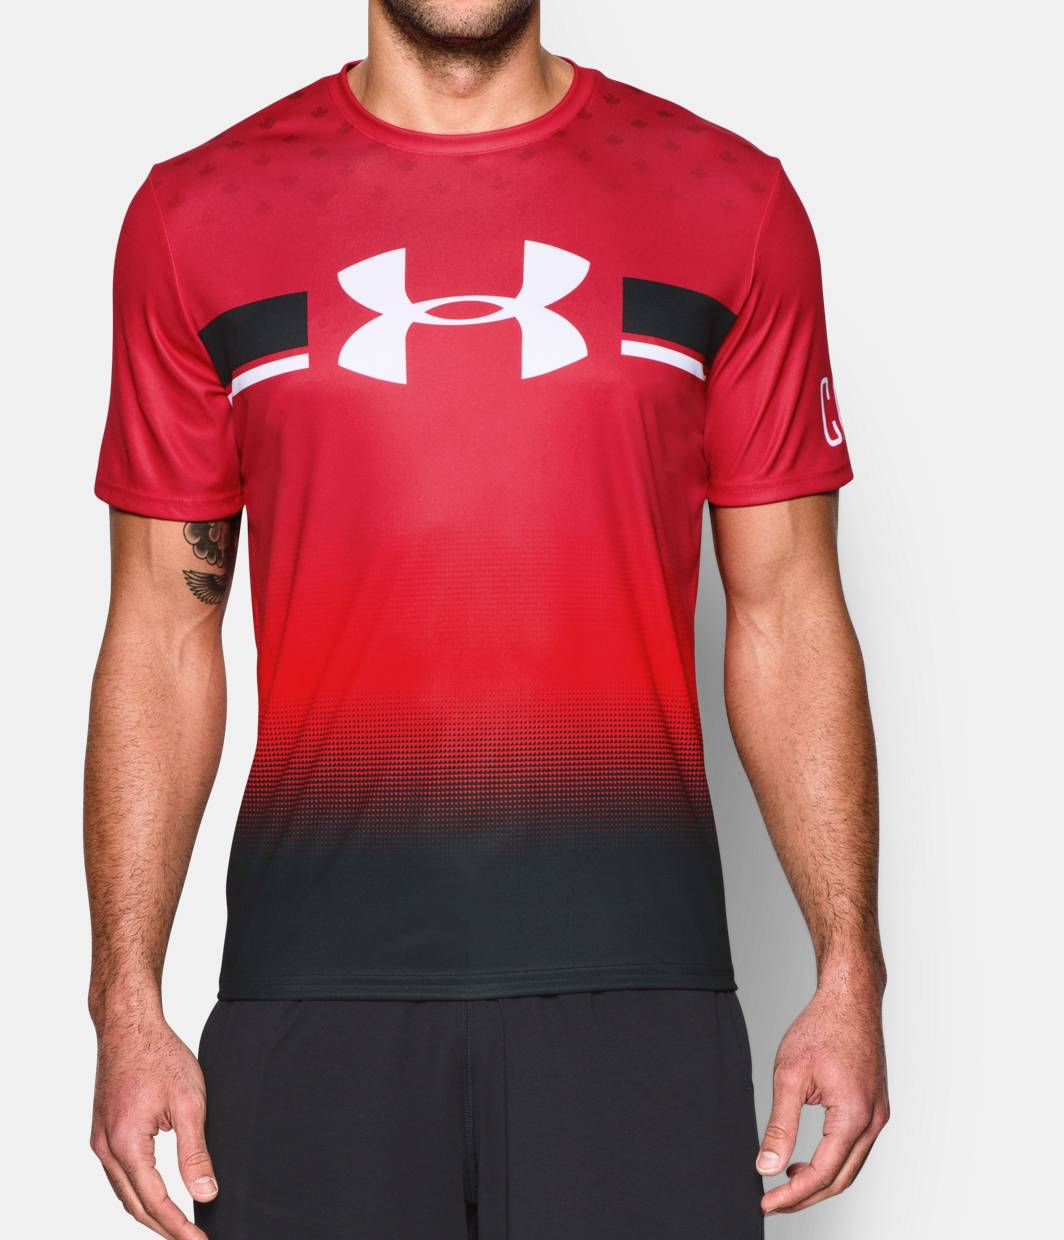 Under Armour Locker T-Shirt Tee Men's UA Short Sleeve Jersey Tshirt Sold by American Living Online. $ Under Armour Men's Golf Fitted Mock Top White/Steel S. Sold by proozyoutlet an eBay Marketplace seller. $ Under Armour New Under Armour Storm Fleece Digi Camo Hoodie Gray Men's XL $